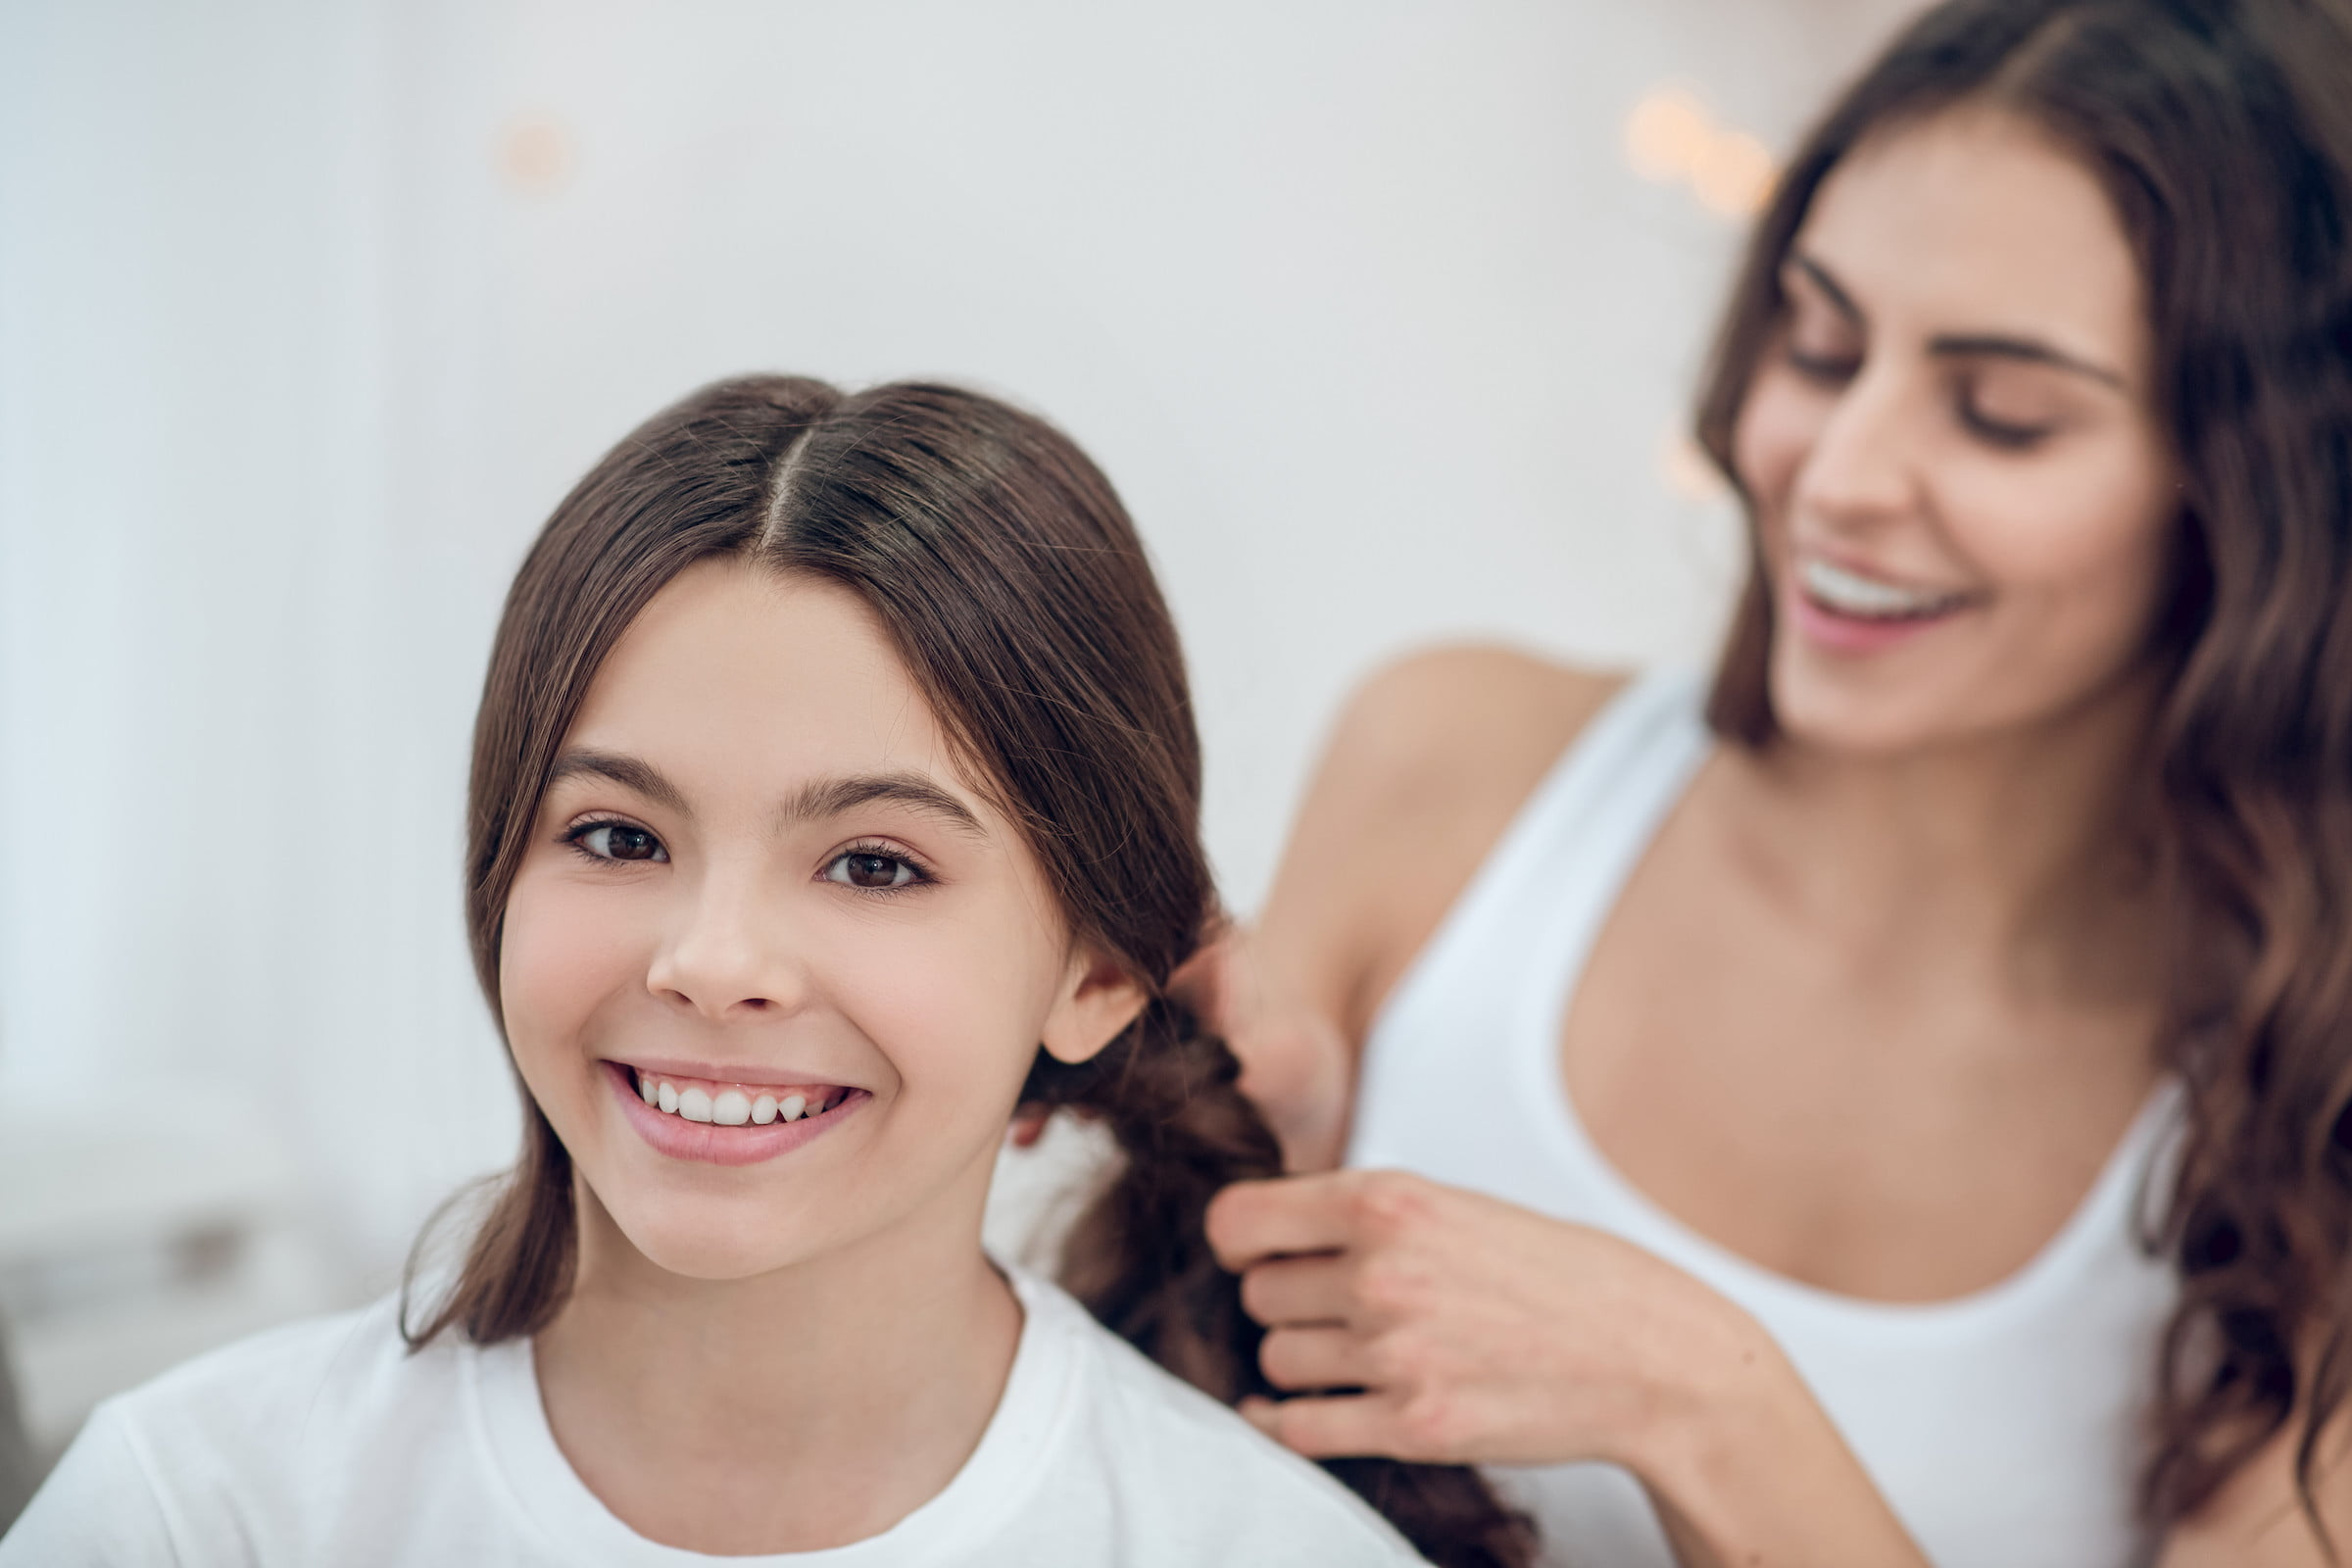 5 amazing kid hairstyles for 10-year-old girls   NewFolks